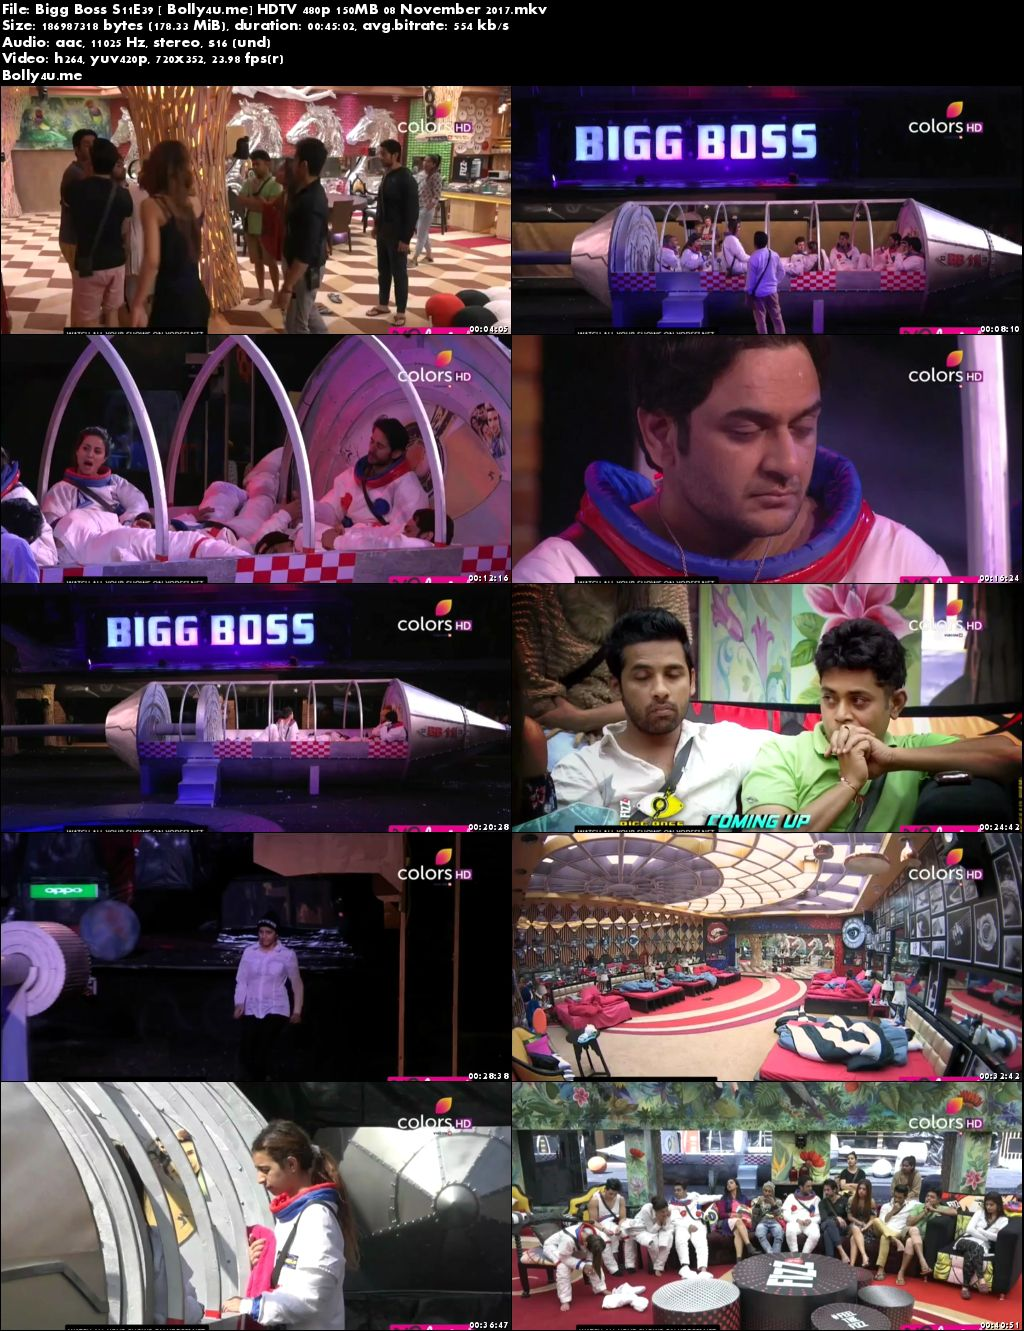 Bigg Boss S11E39 HDTV 480p 150MB 08 November 2017 Download